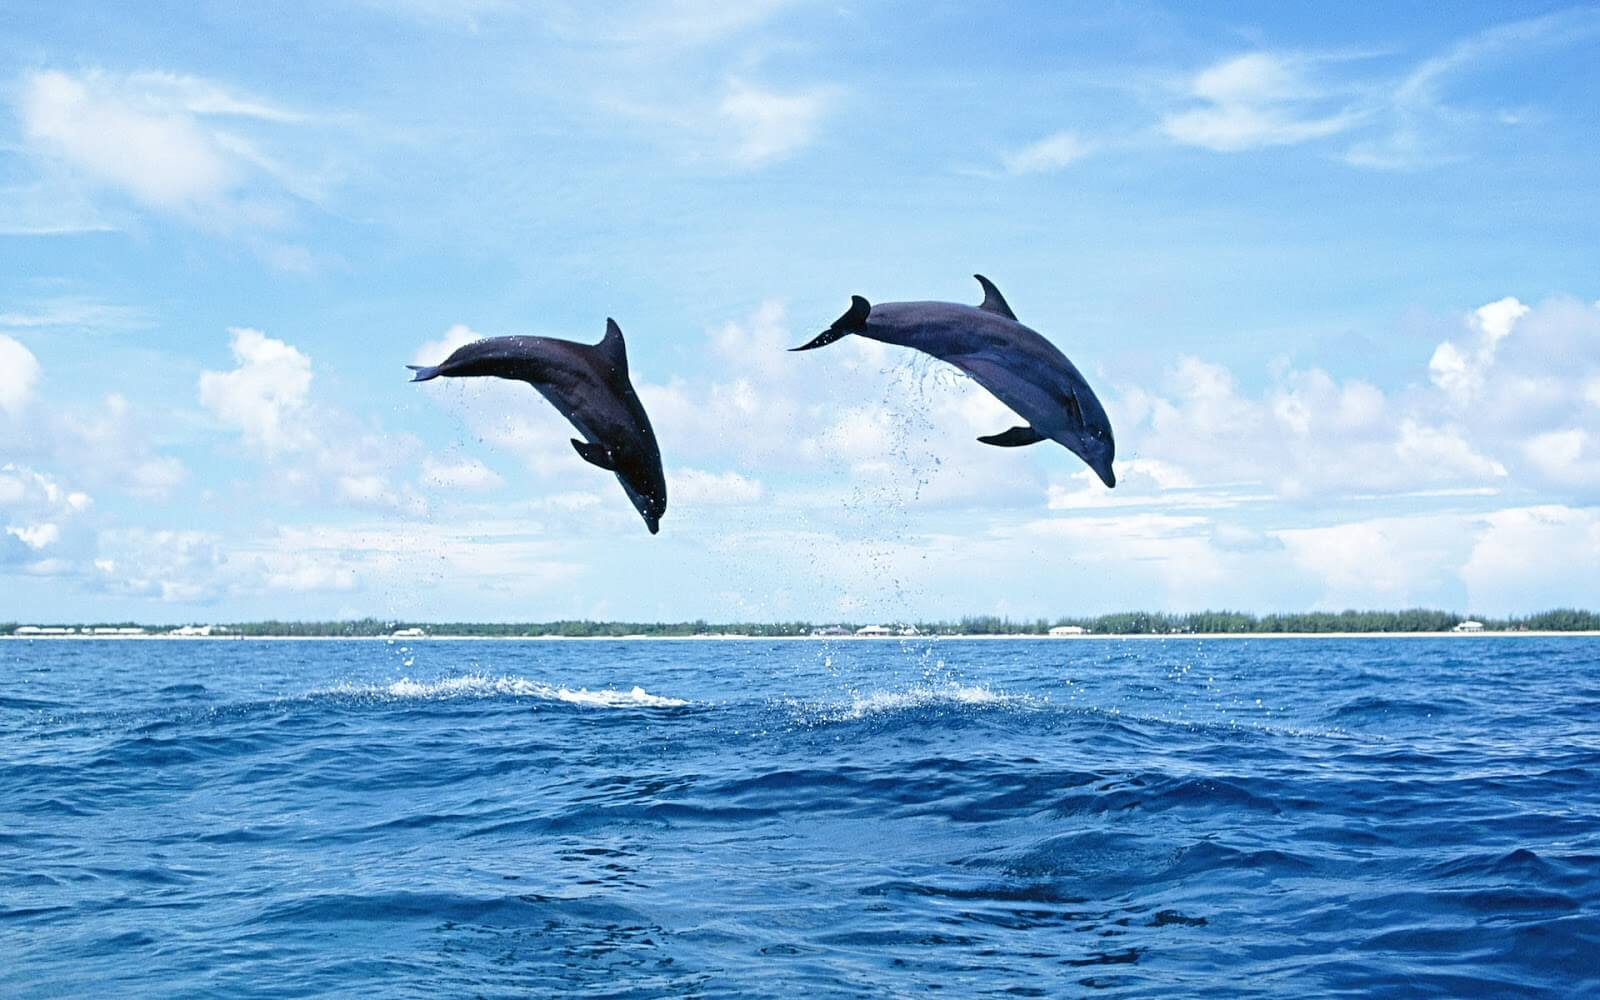 Dolphin Wallpaper With Dolphins Jumping High Out Of The Water Your Training Edge